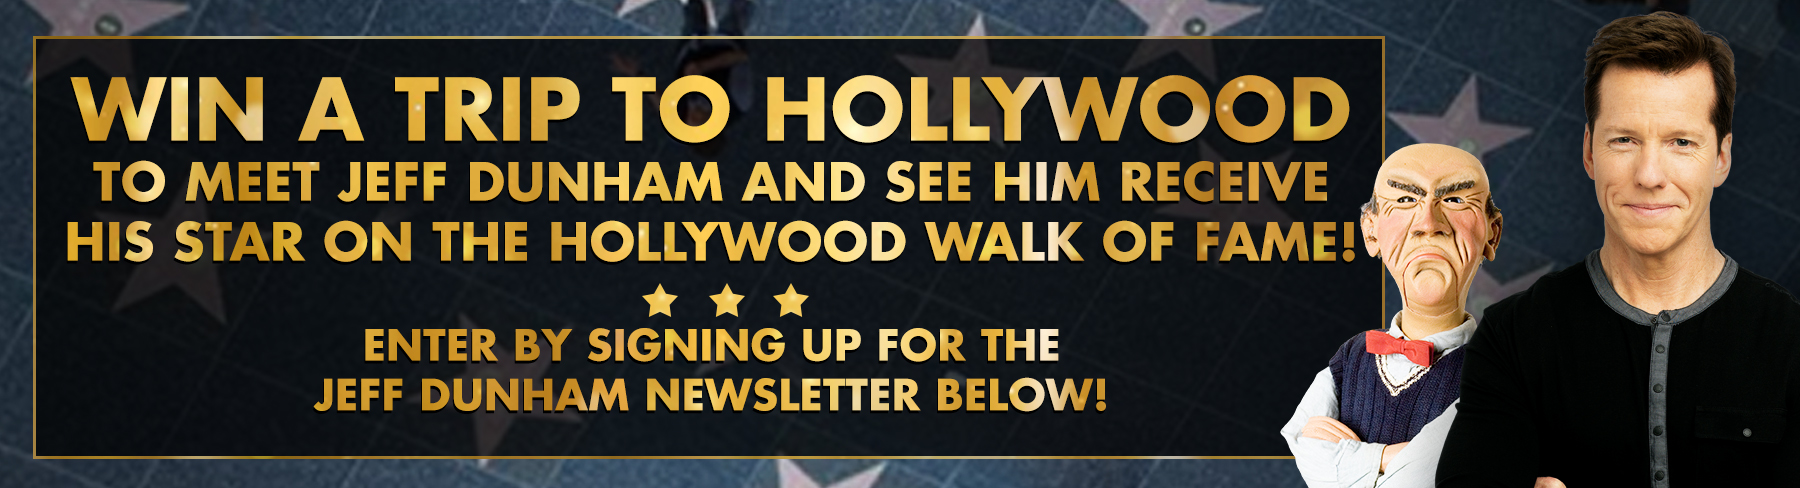 Hollywoodstar to meet jeff dunham and attend his hollywood walk of fame ceremony m4hsunfo